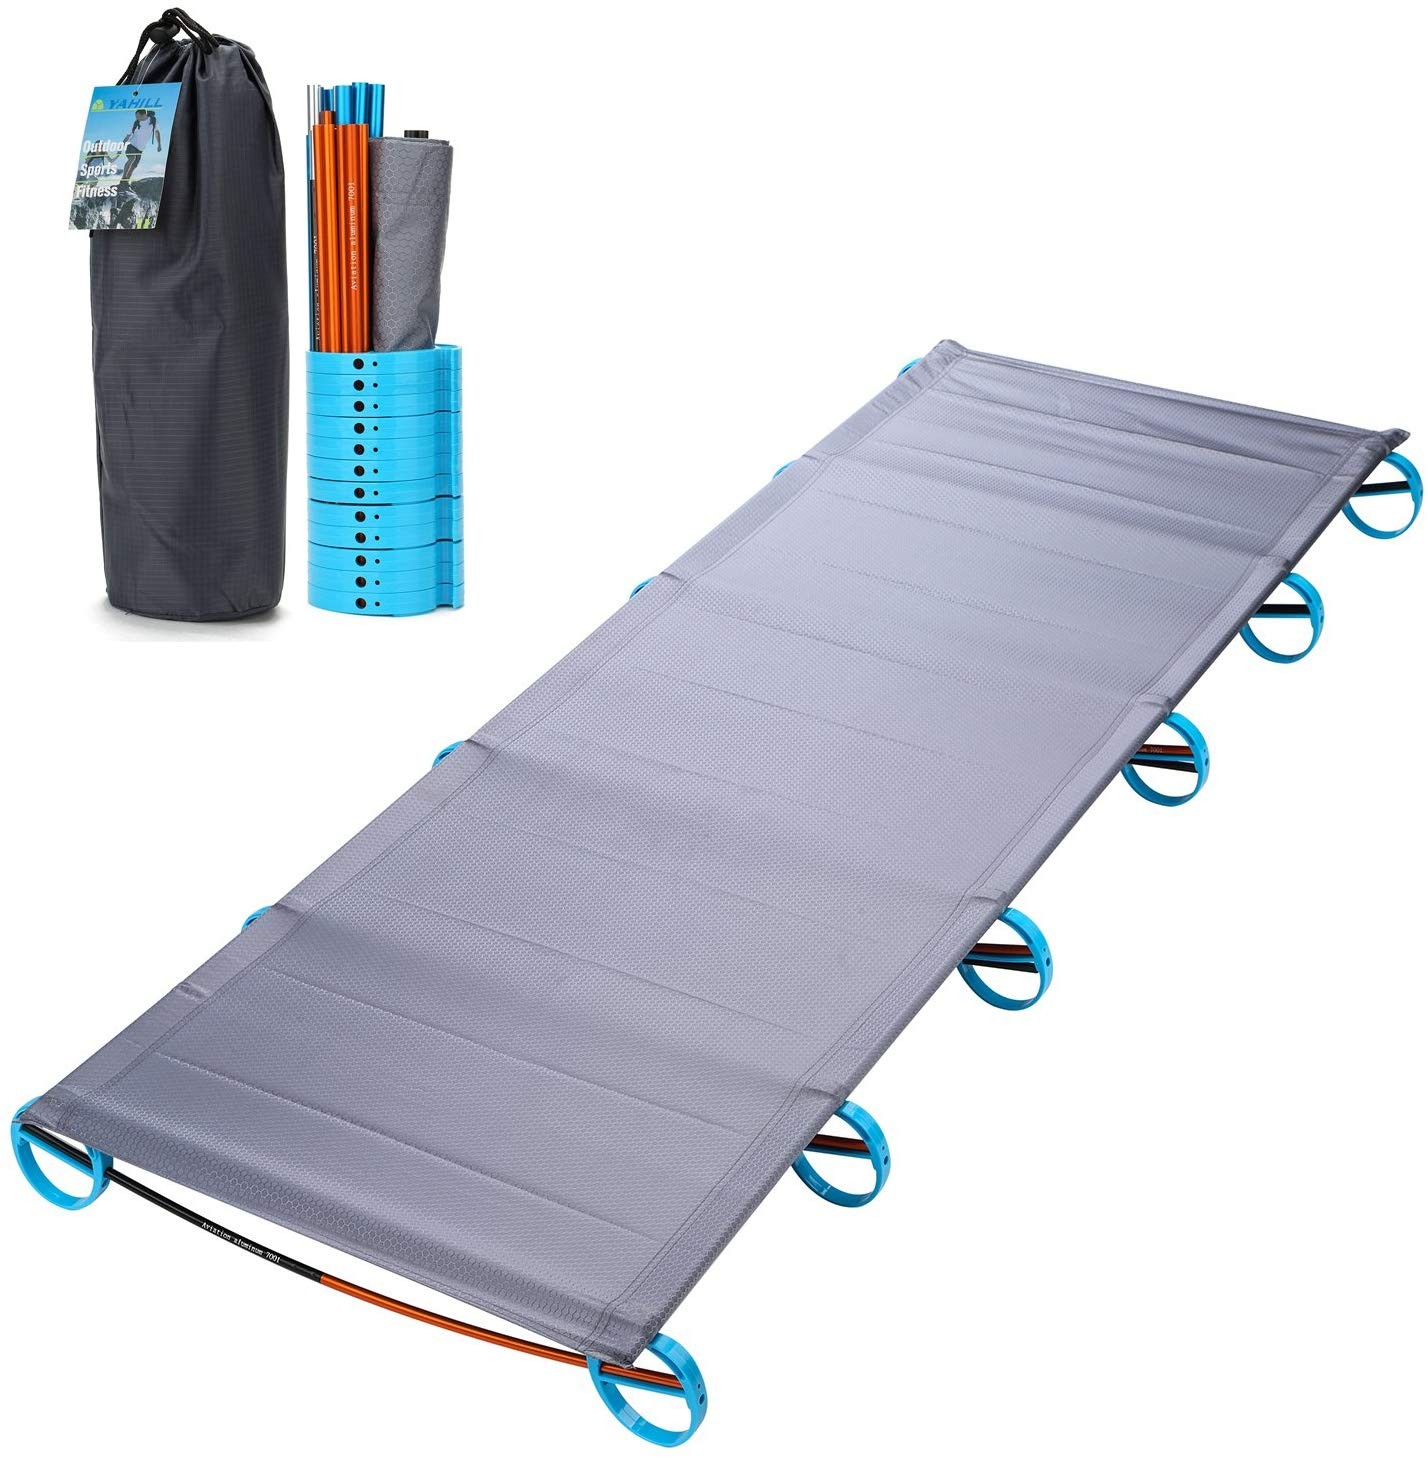 Aluminum Portable Camping Bed